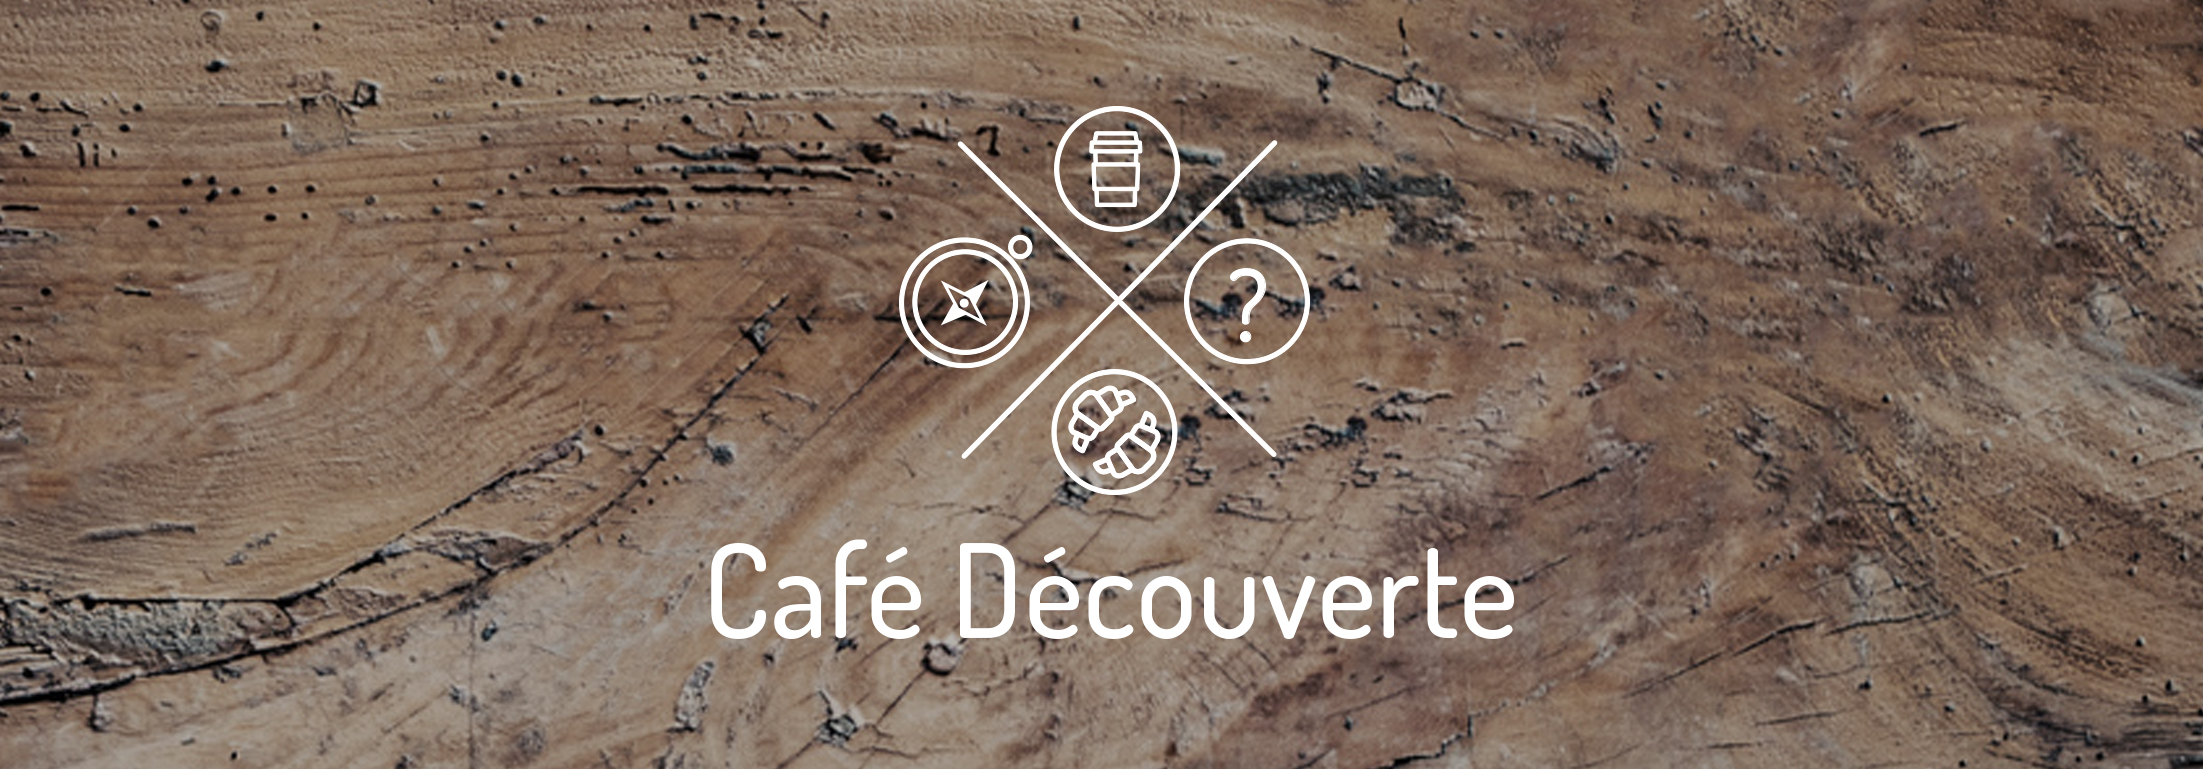 cafe decouverte